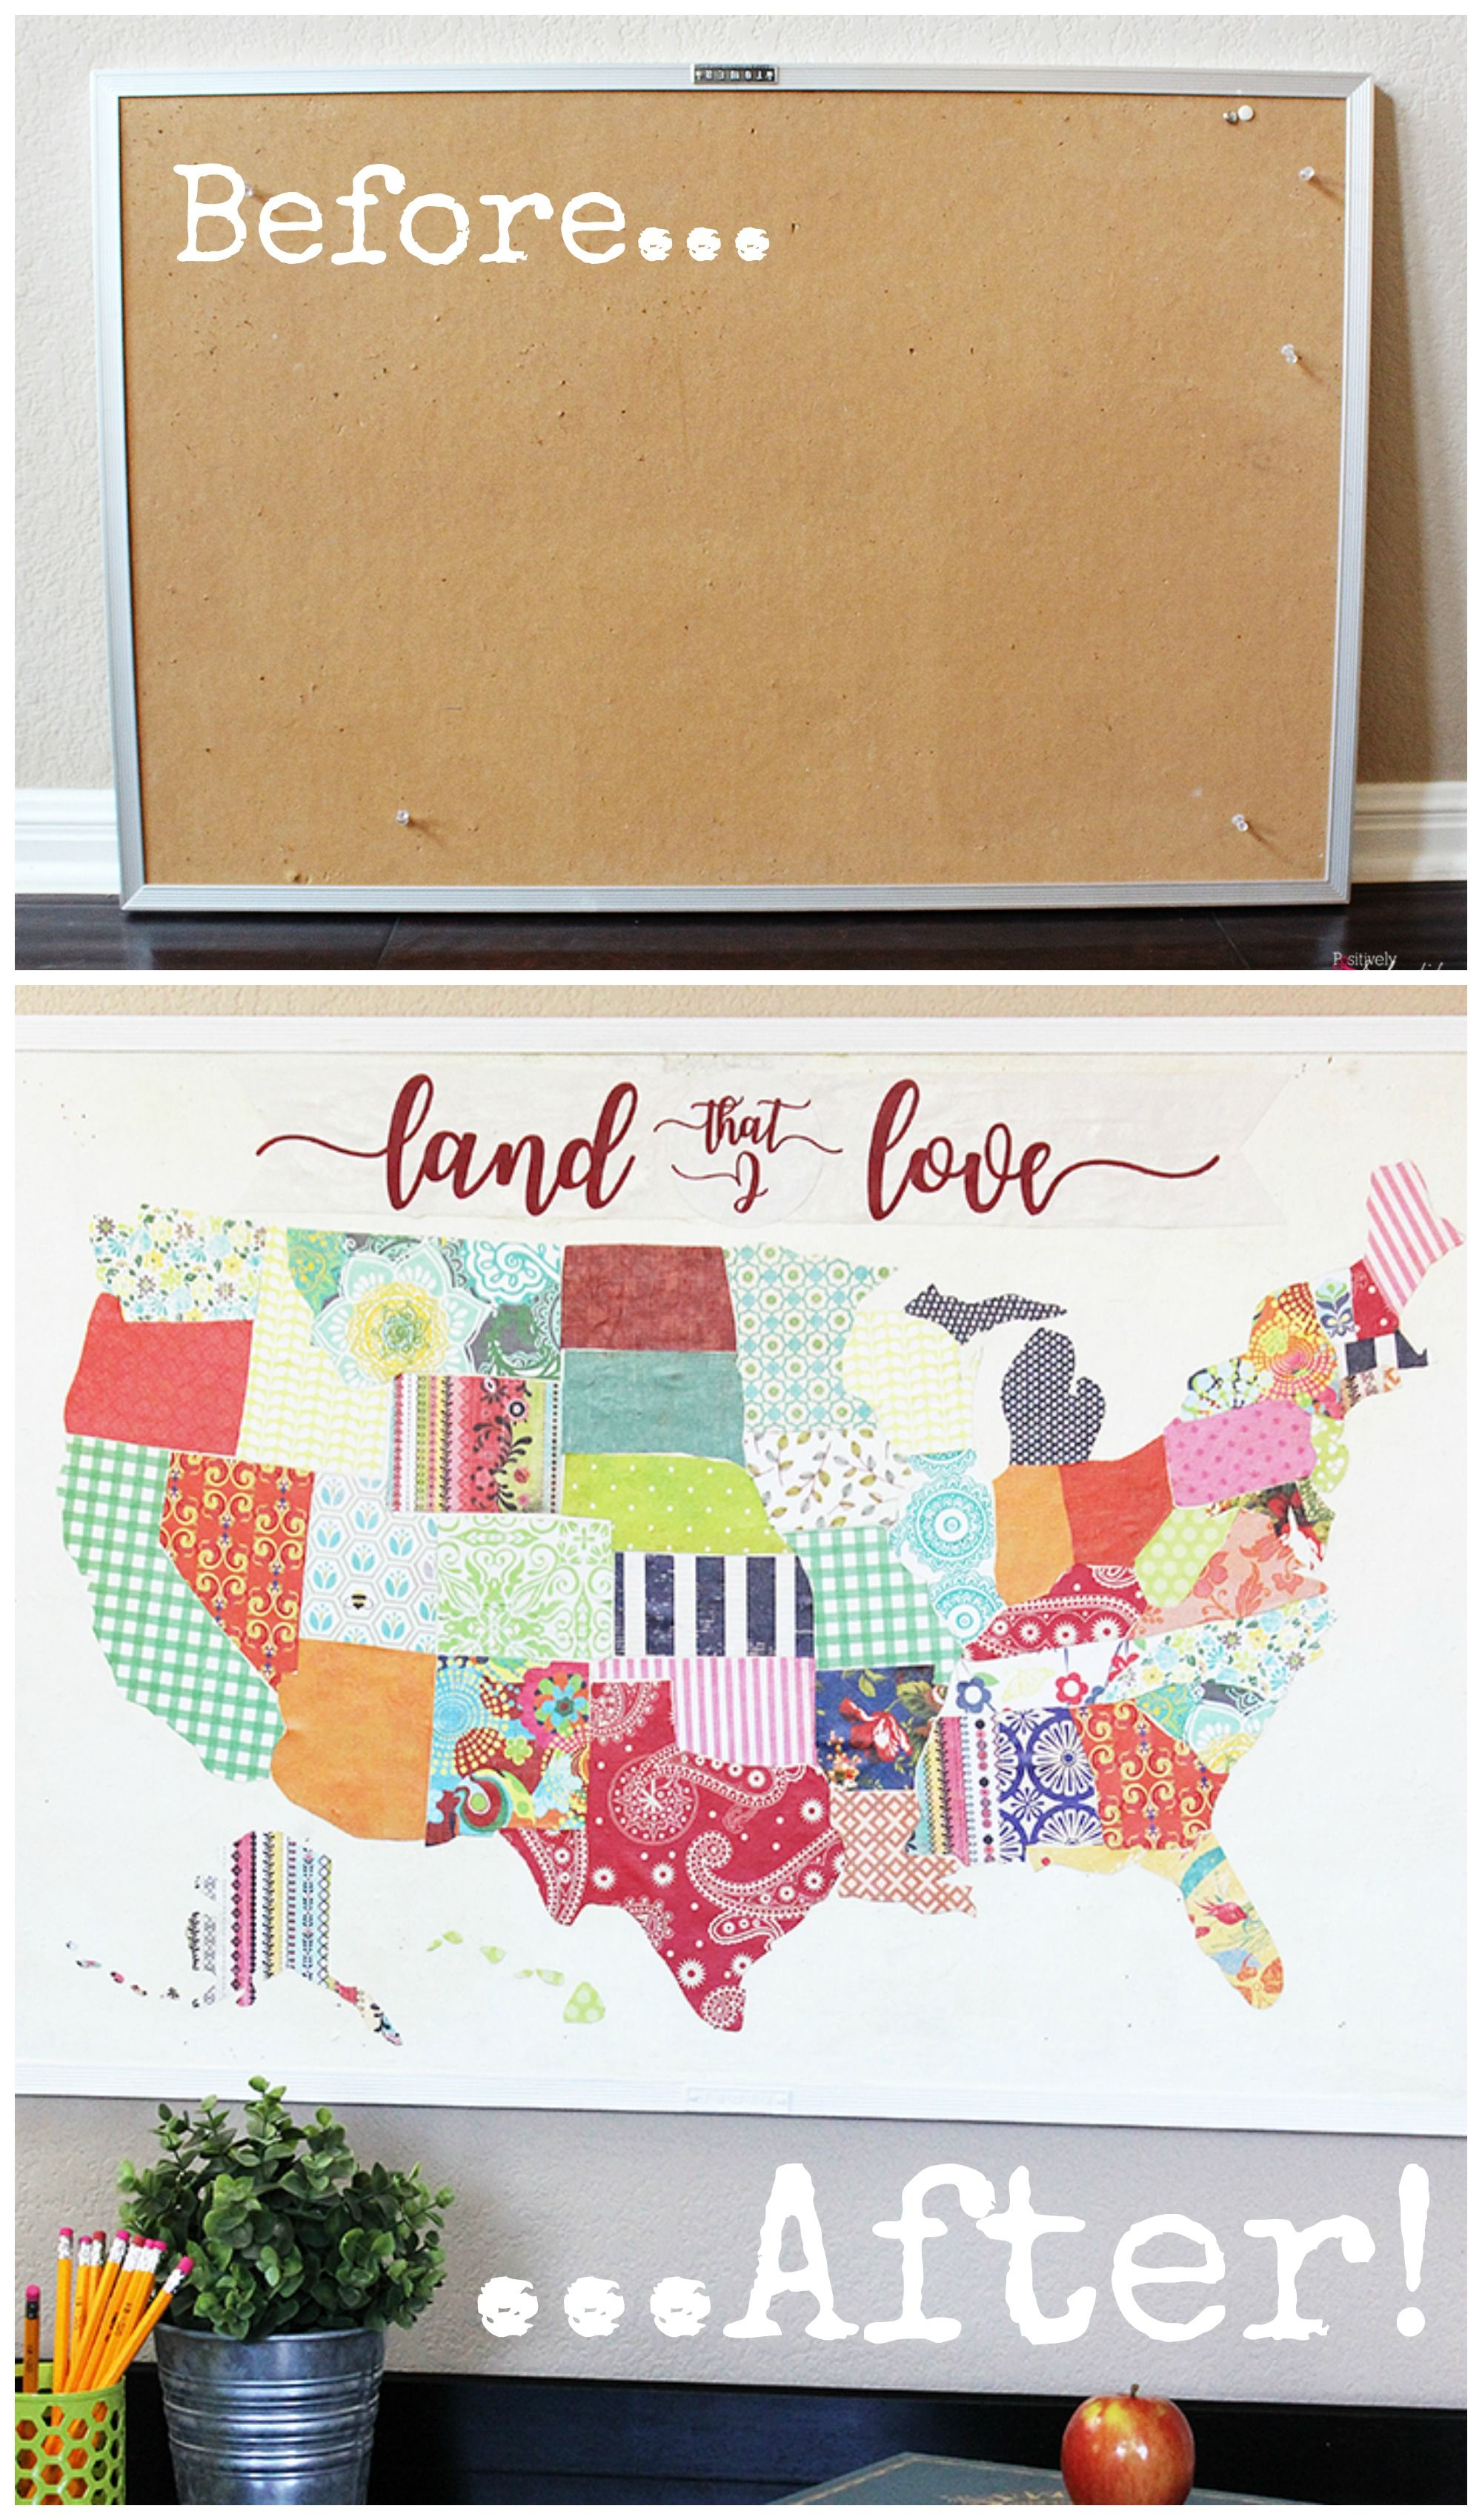 United States Map Mod Podge Bulletin Board A Fun Upcycle Project - Map of the united states cork board